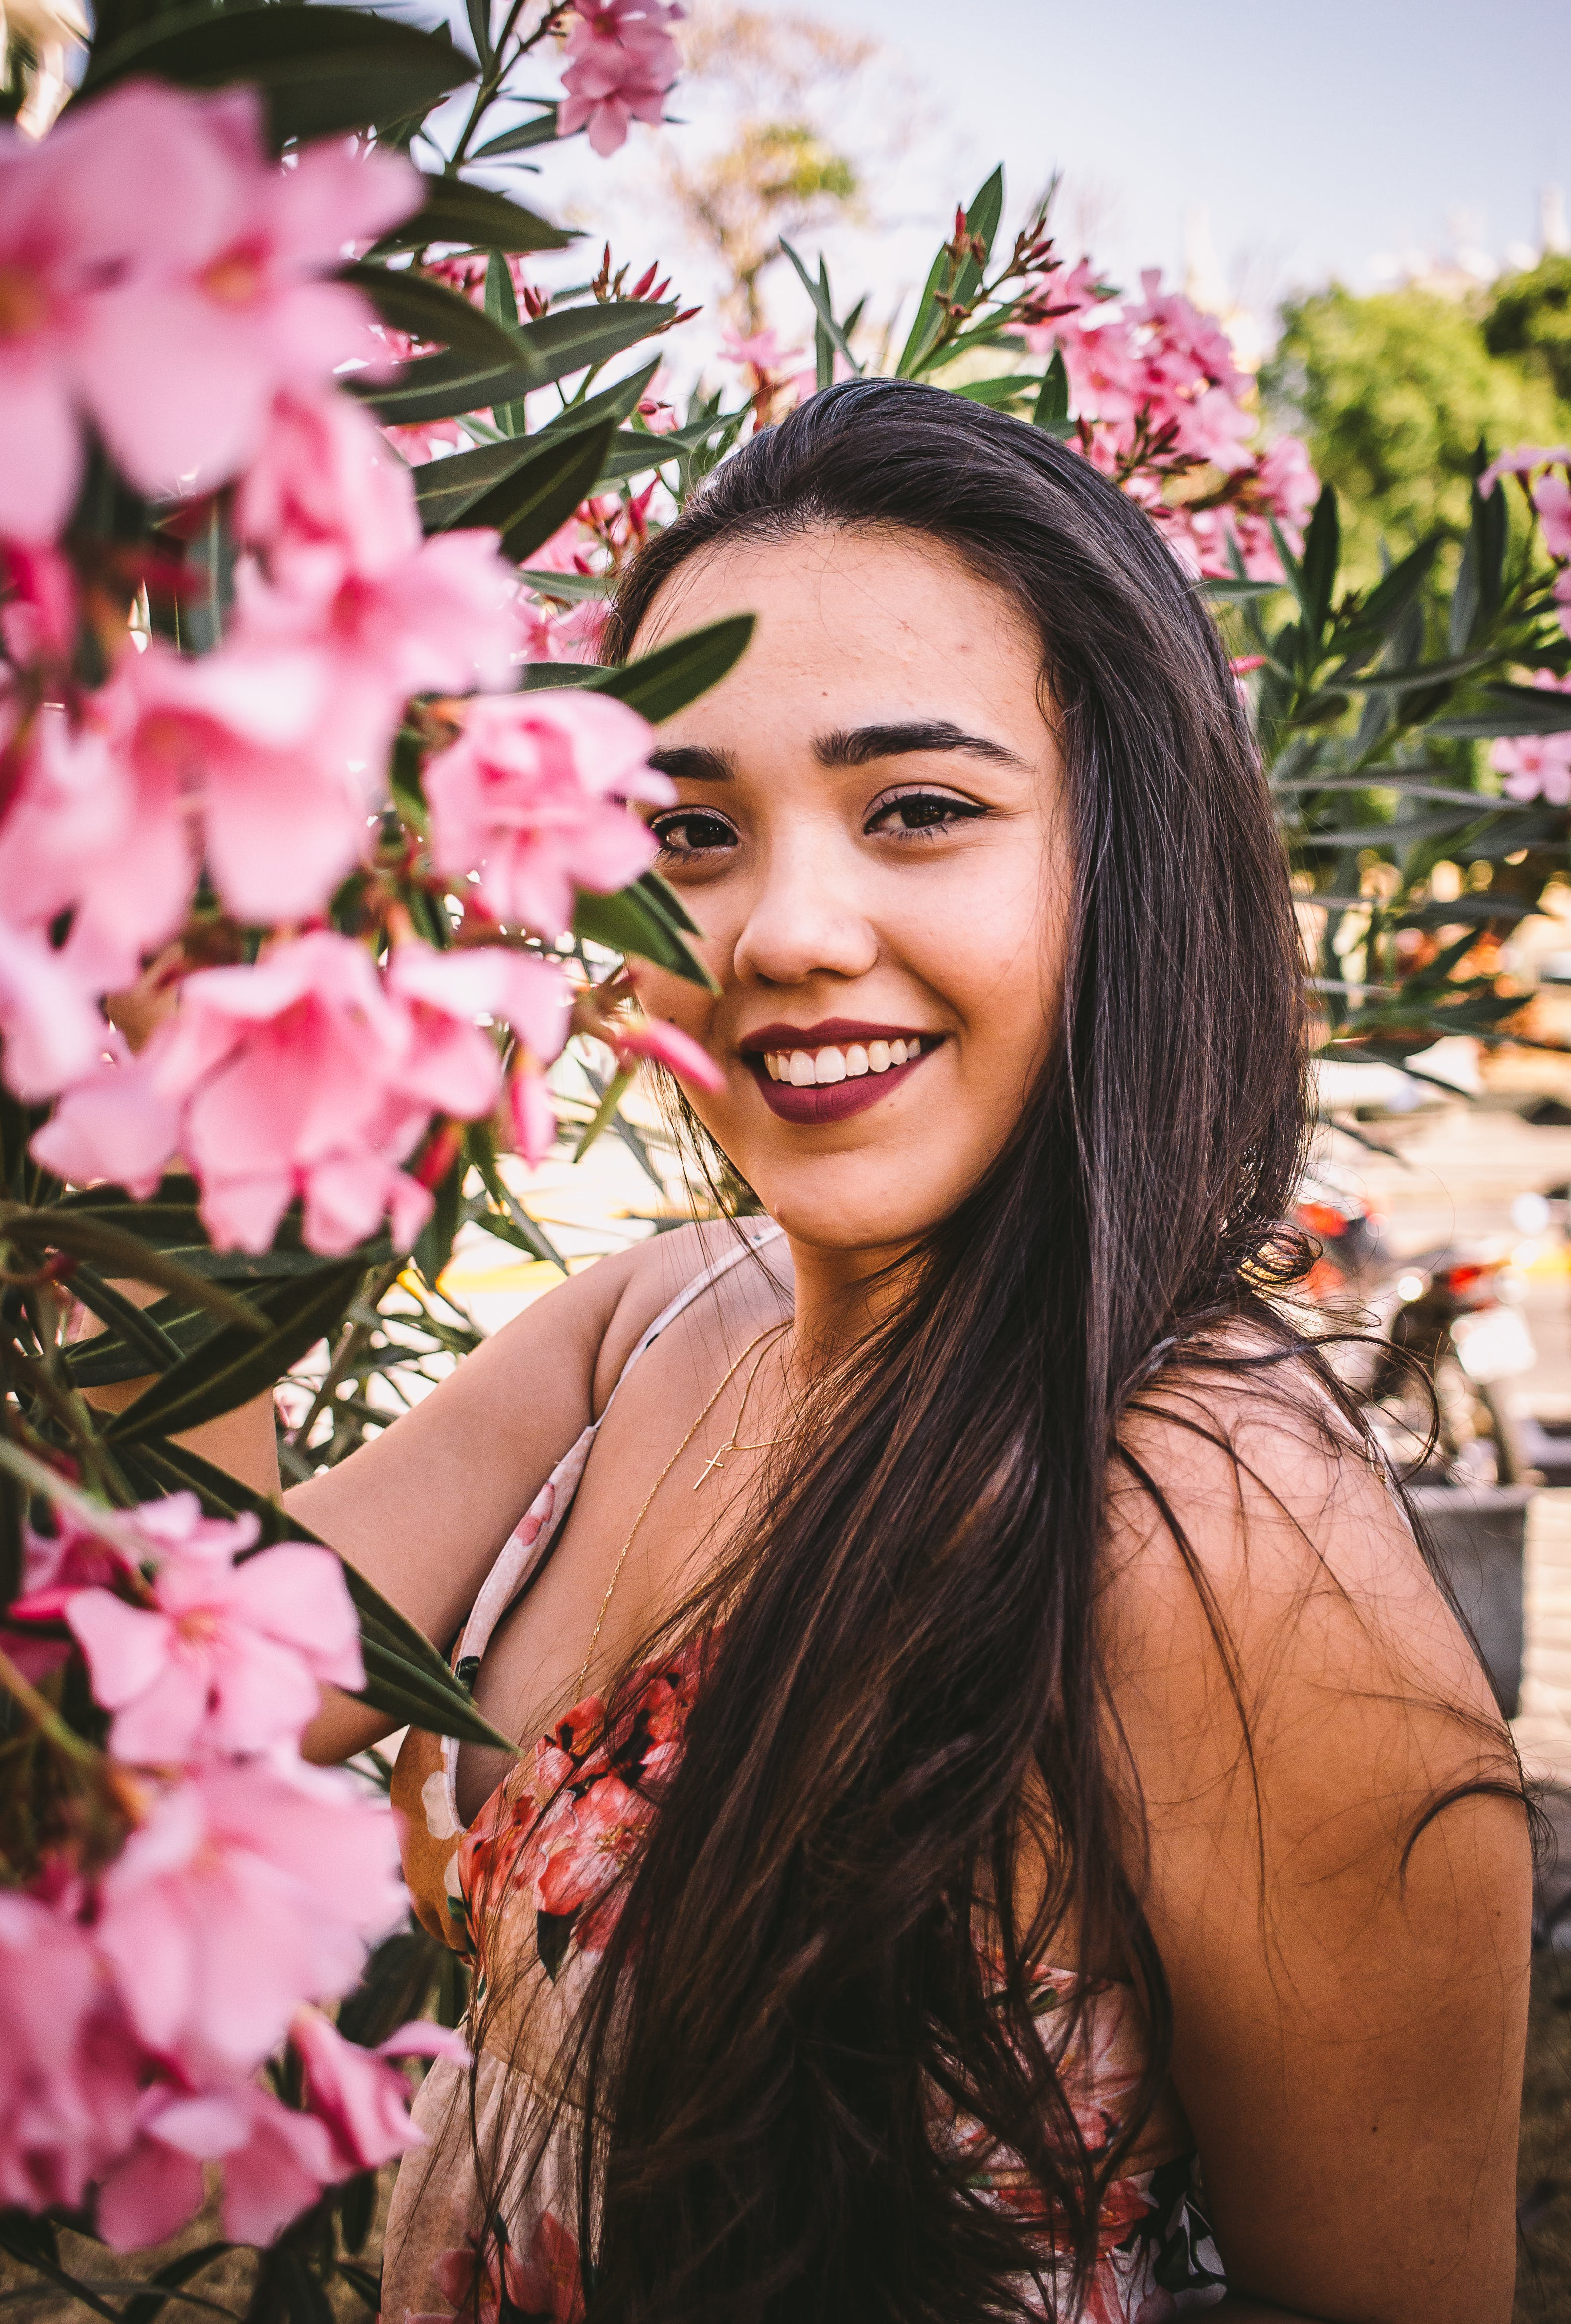 Woman Smiling Surrounded By Pink Flowers